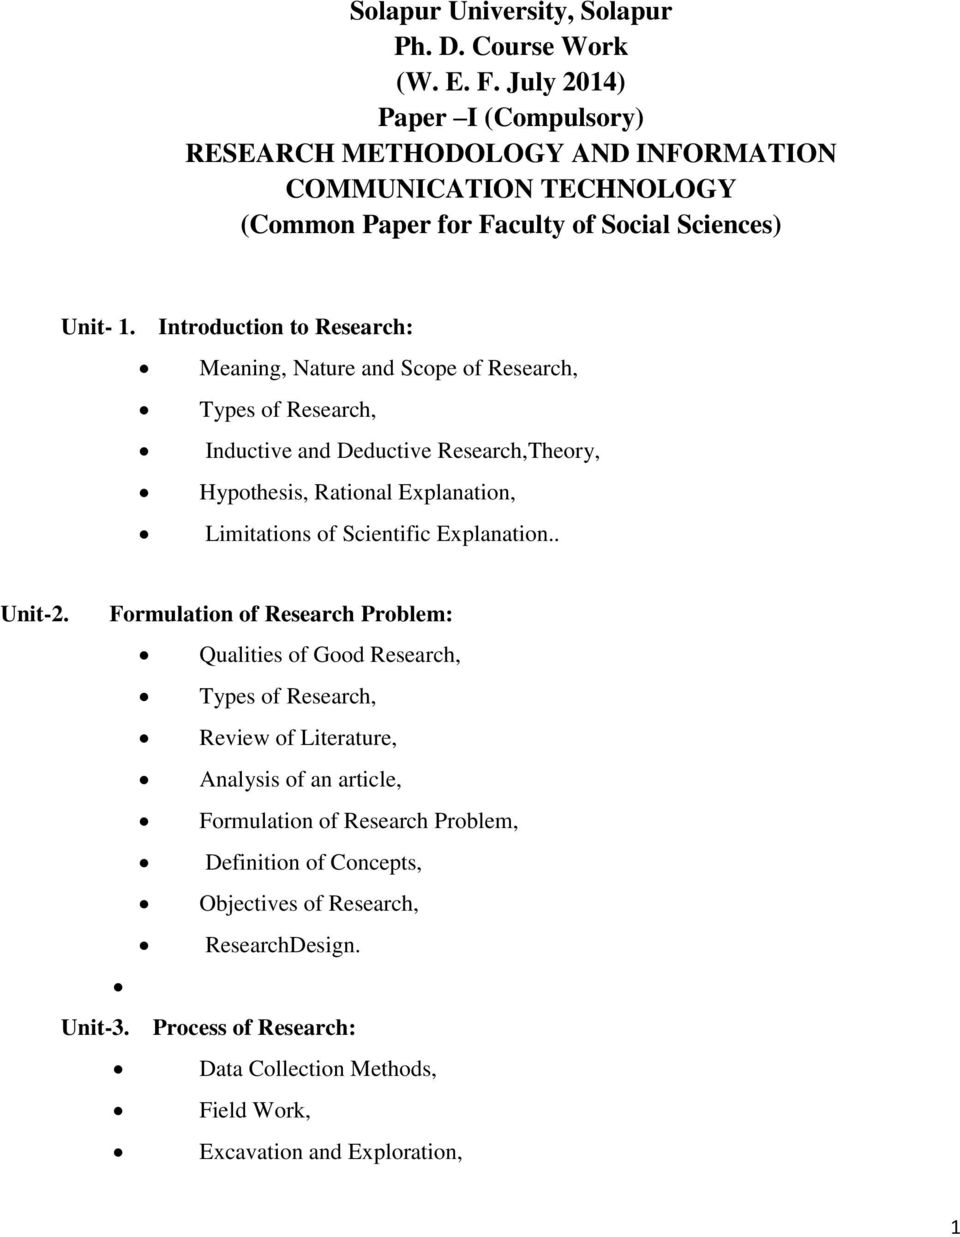 Introduction to Research: Meaning, Nature and Scope of Research, Types of Research, Inductive and Deductive Research,Theory, Hypothesis, Rational Explanation, Limitations of